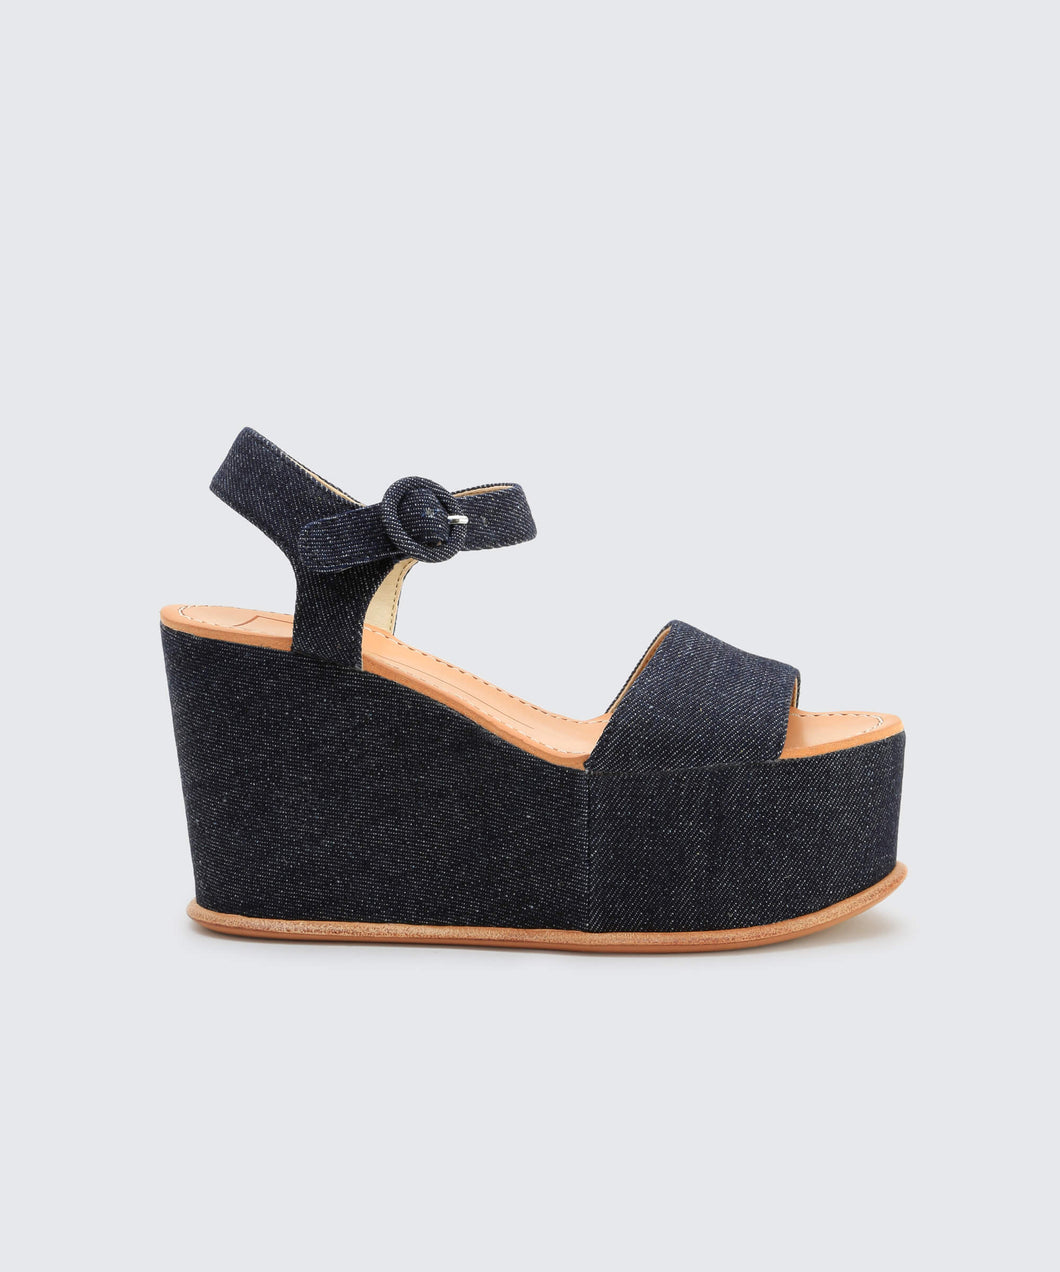 DATIAH WEDGES IN DK DENIM -   Dolce Vita